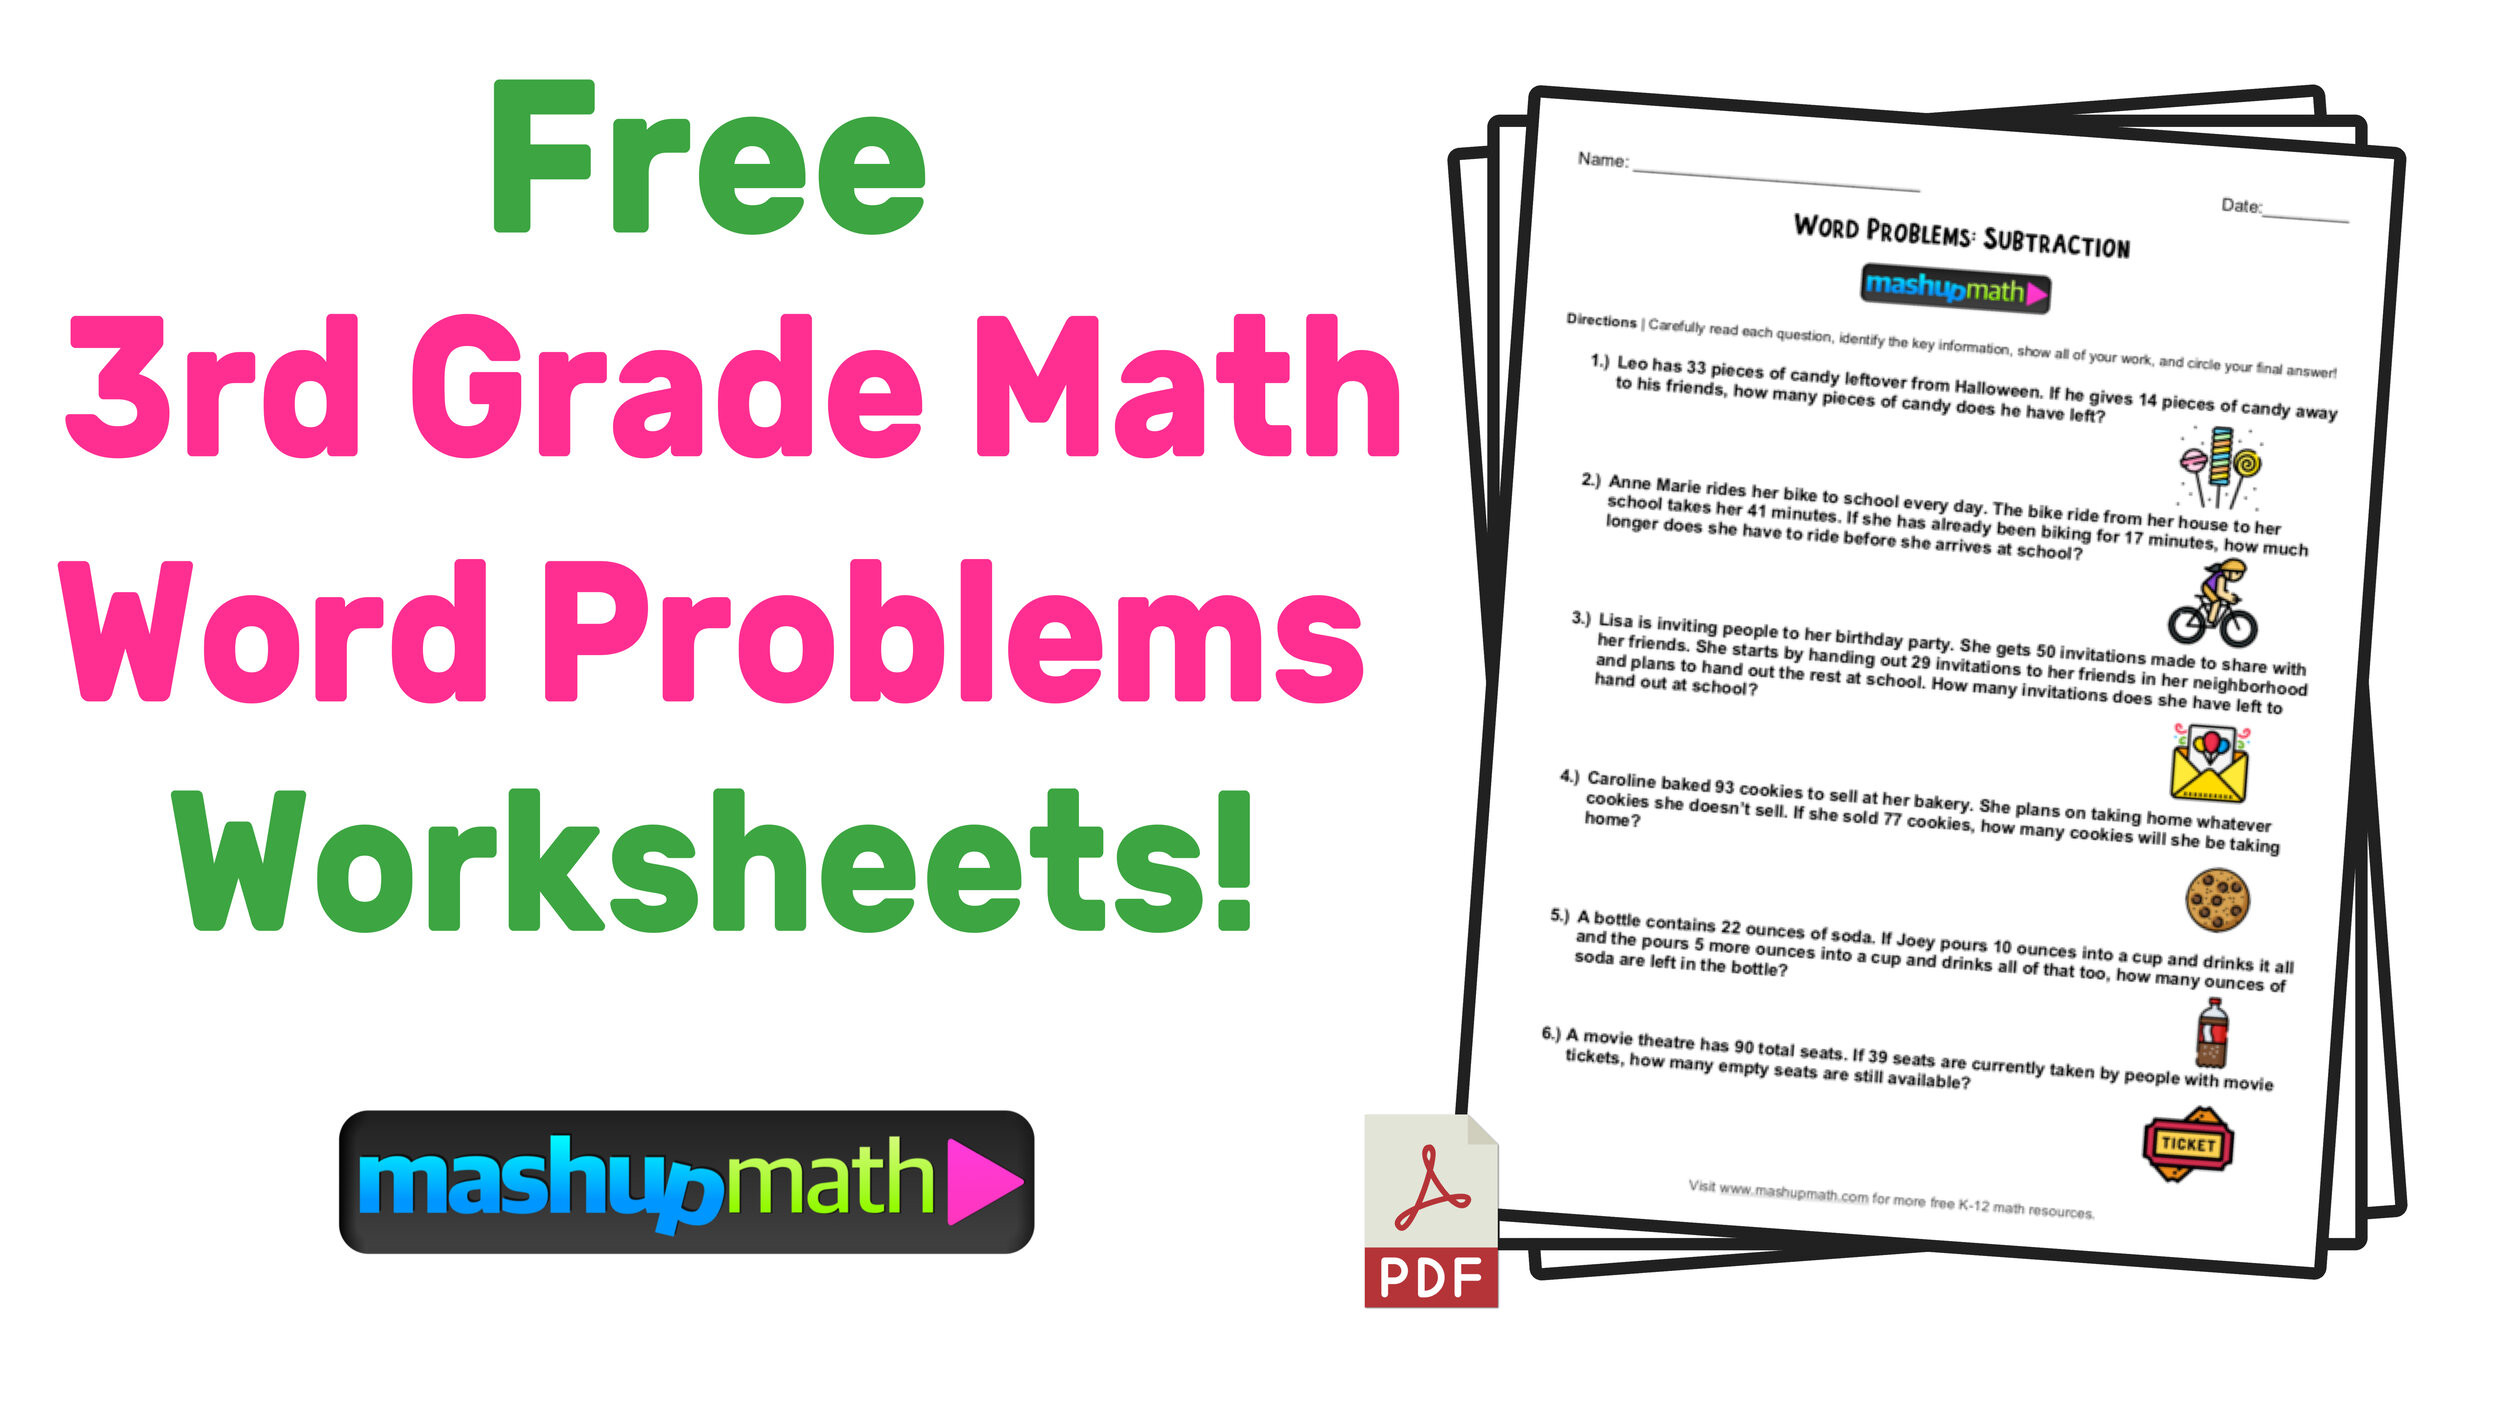 3rd Grade Measuring Worksheets 3rd Grade Math Word Problems Free Worksheets with Answers